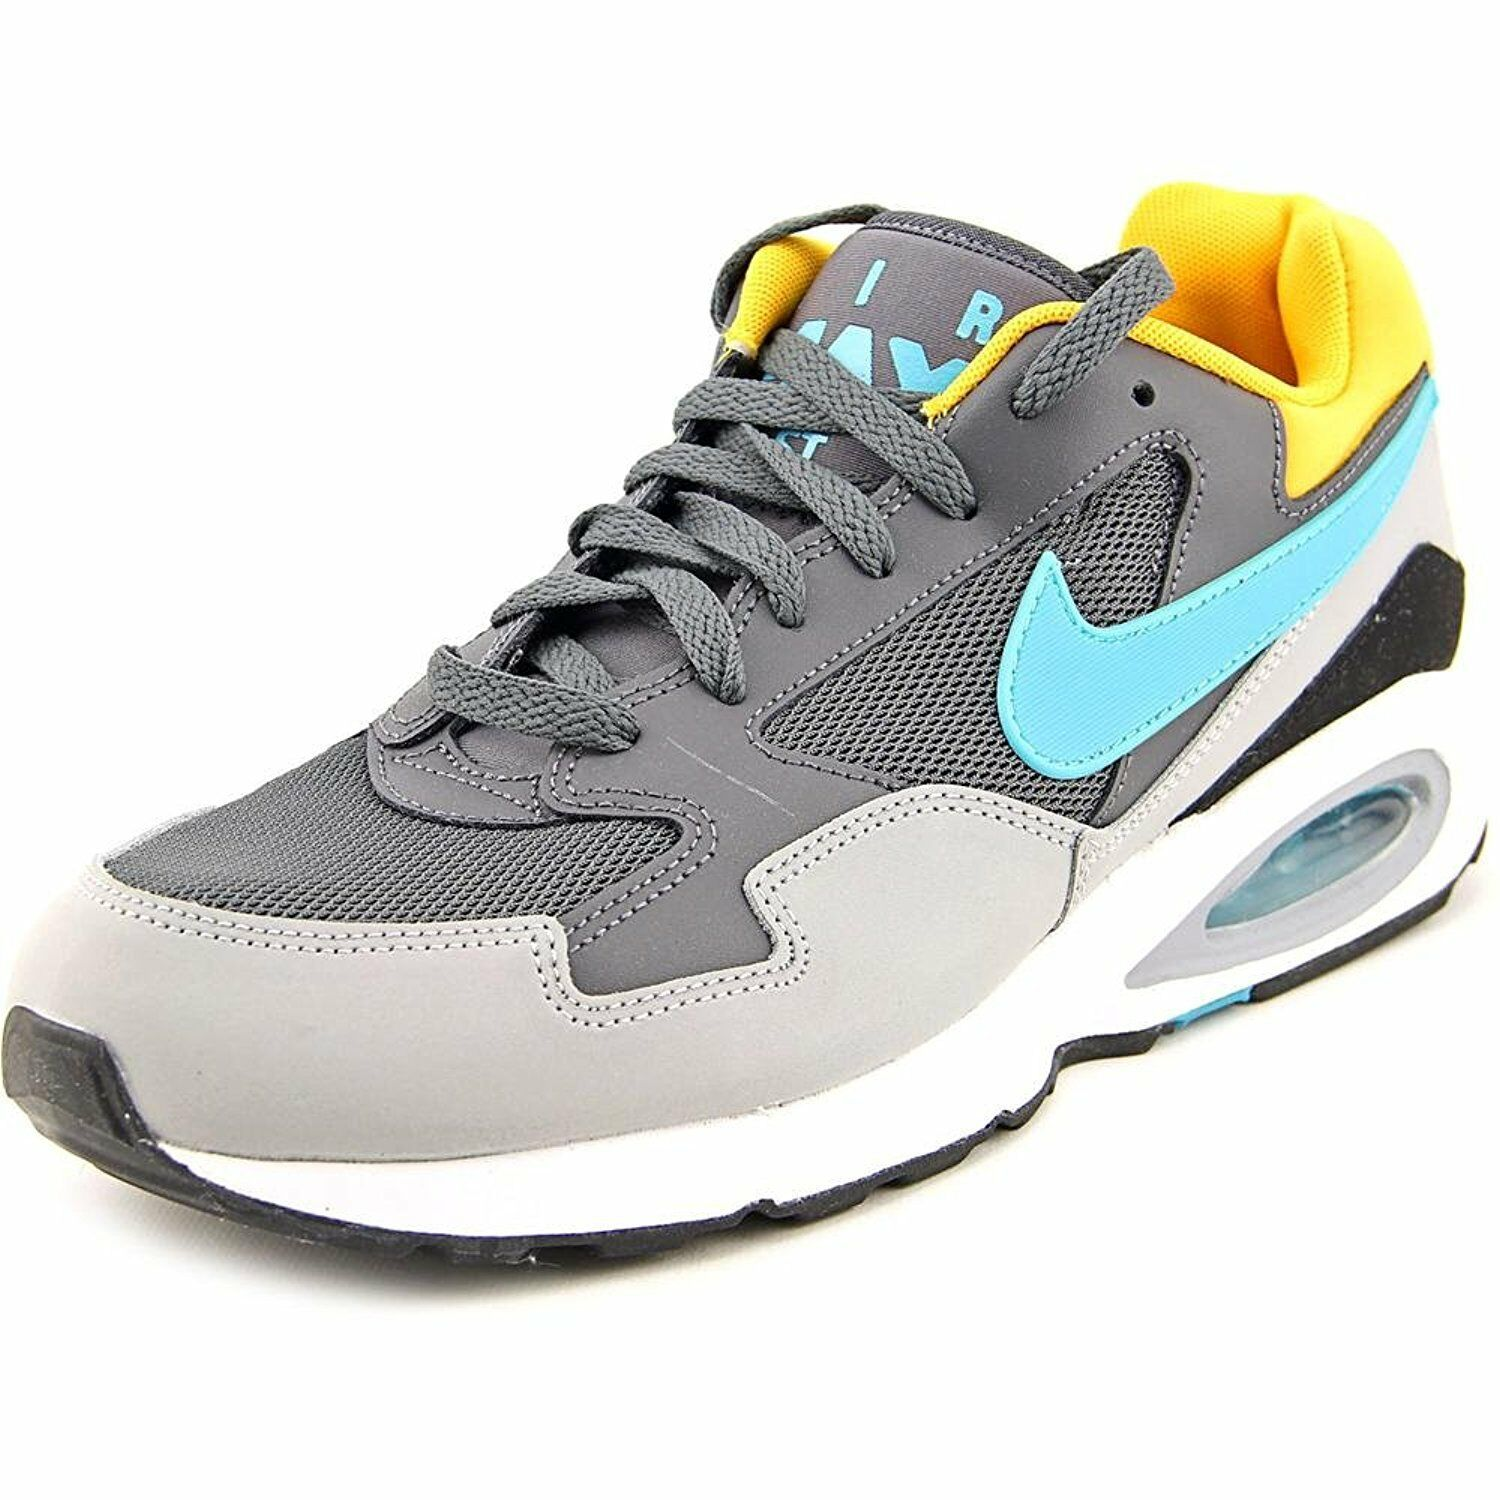 best sneakers 30a20 09c52 clearance mens nike air max st running shoes 652976 003 sizes 10.5 14 10.5  14 sizes